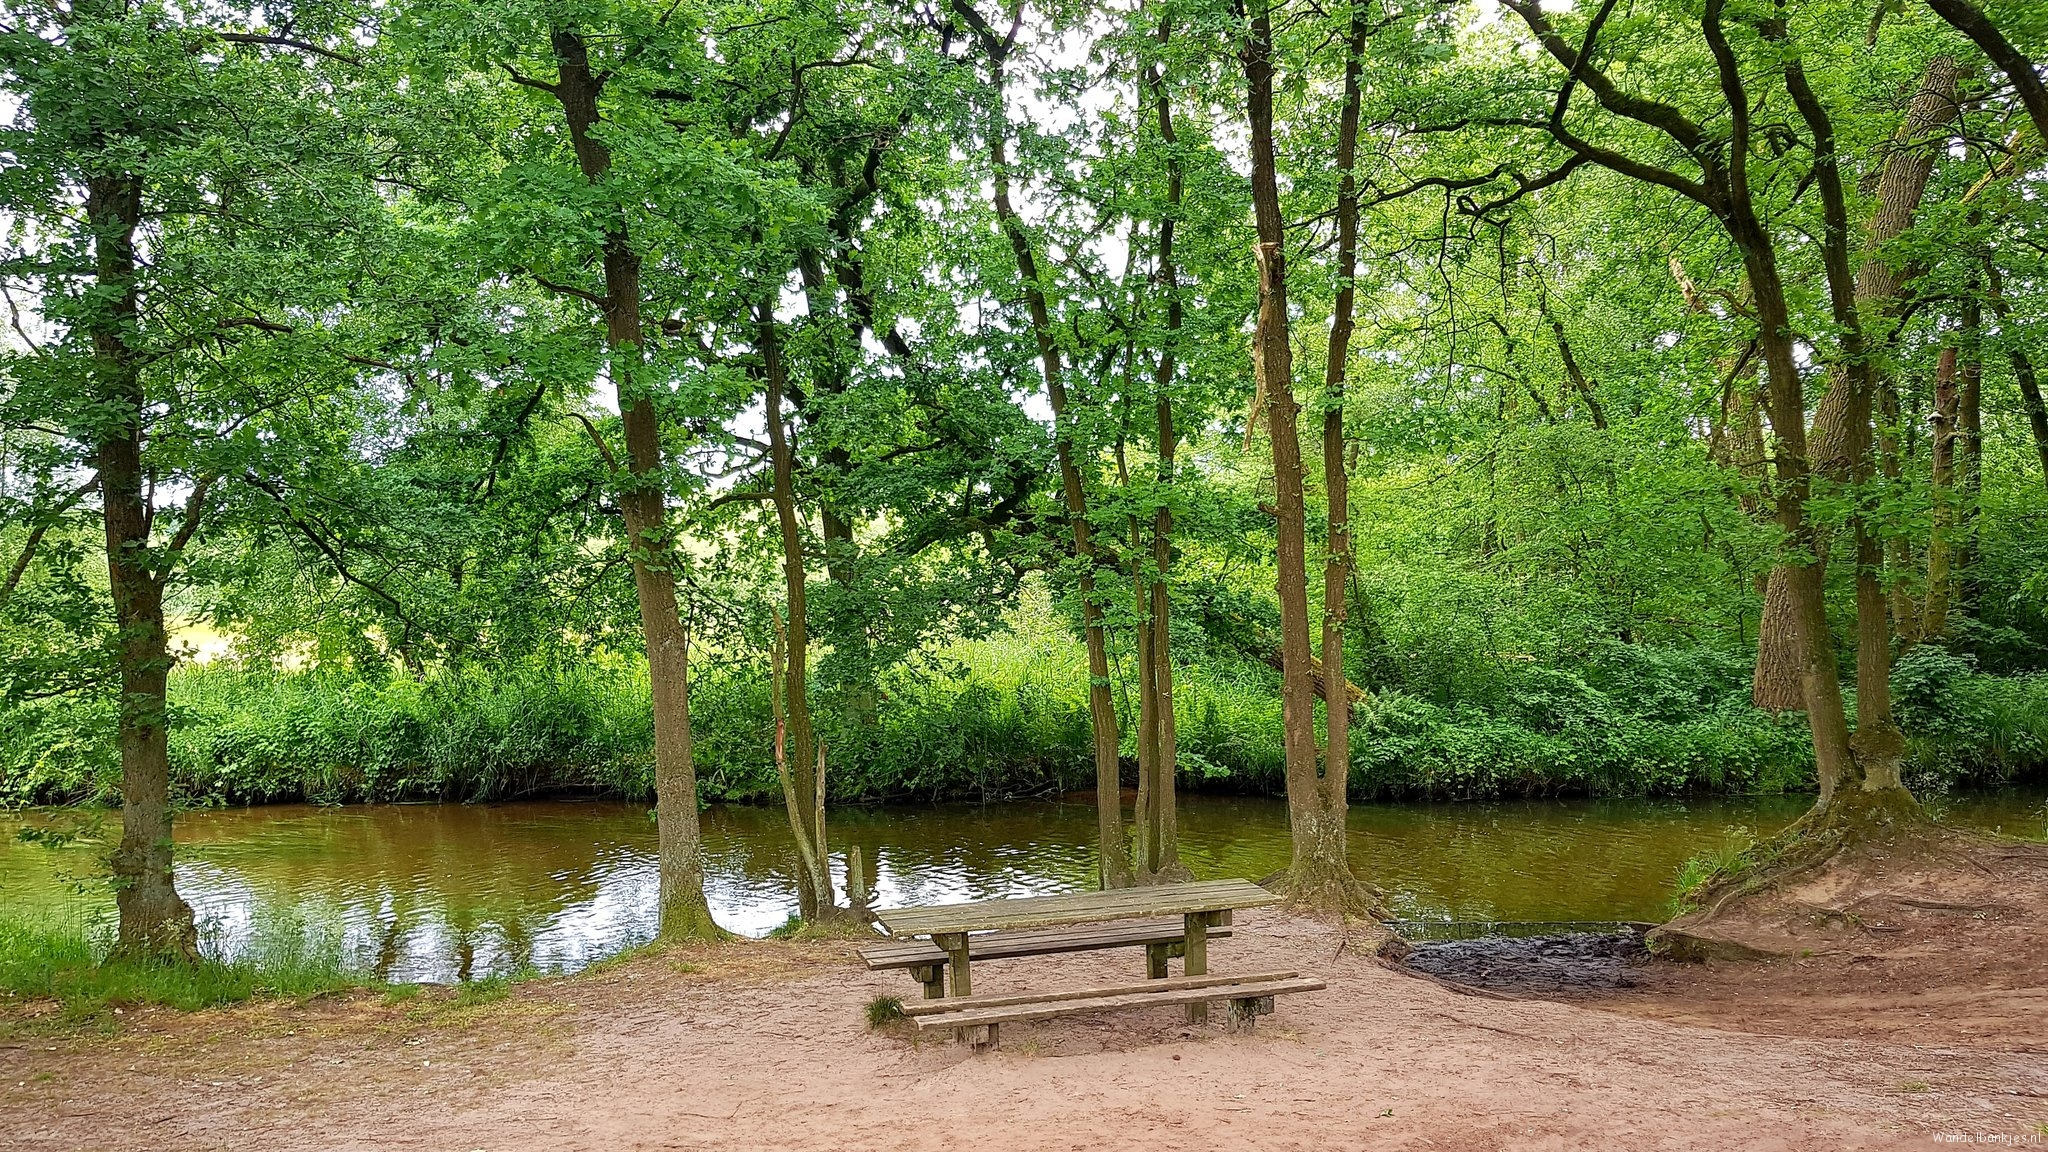 rt-wolfswandelplan-in-the-neighborhood-of-the-dommel-and-the-malpie-between-valkenswaard-and-borkel-walking-benches-https-t-co-vsylu9mwnc